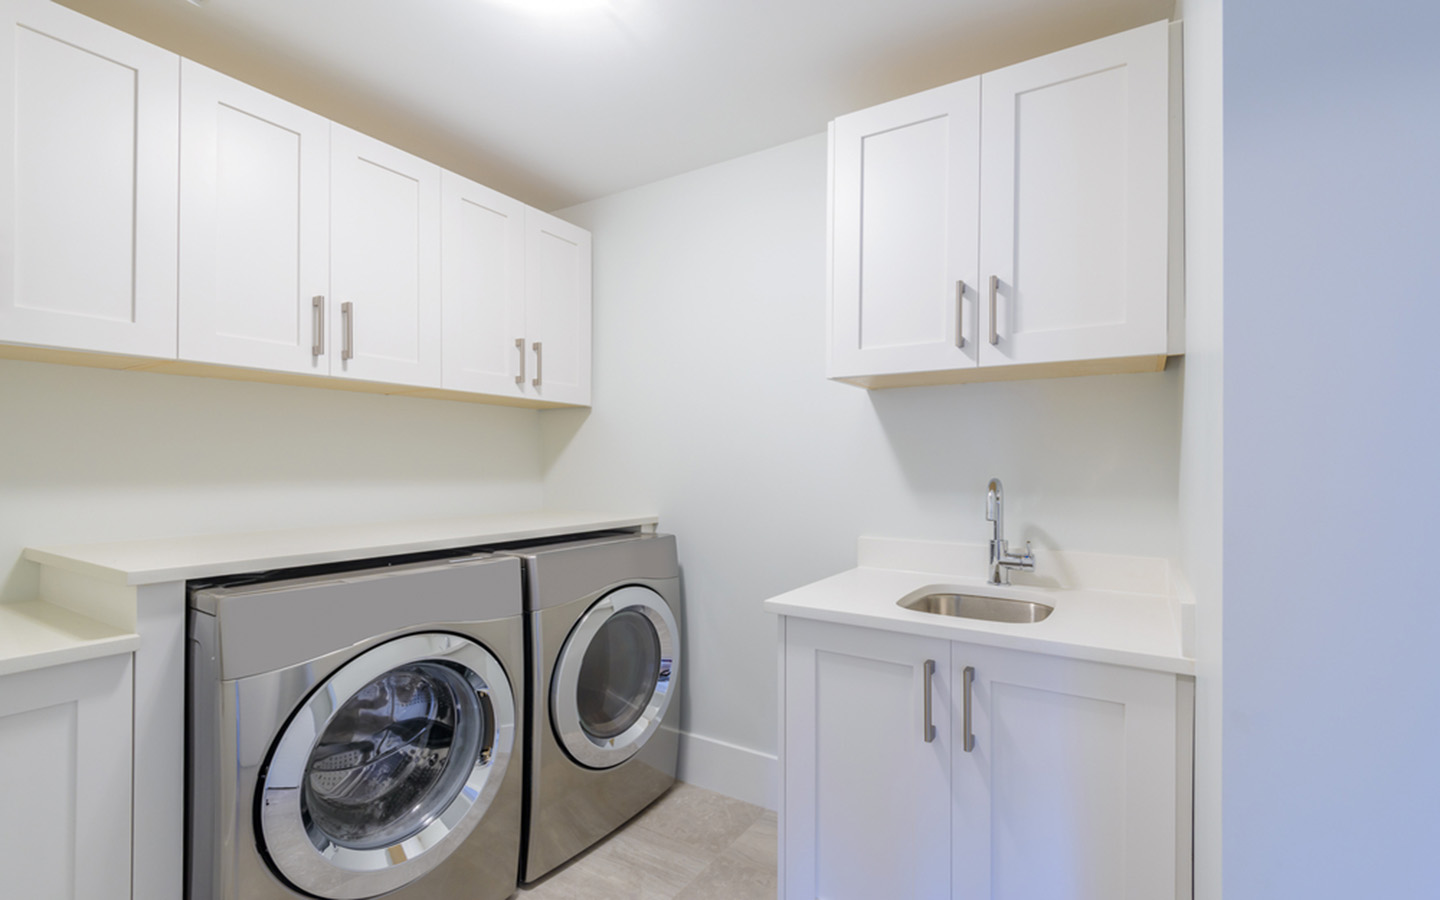 8 Practical Laundry Room Ideas For Space Efficient Design Mybayut